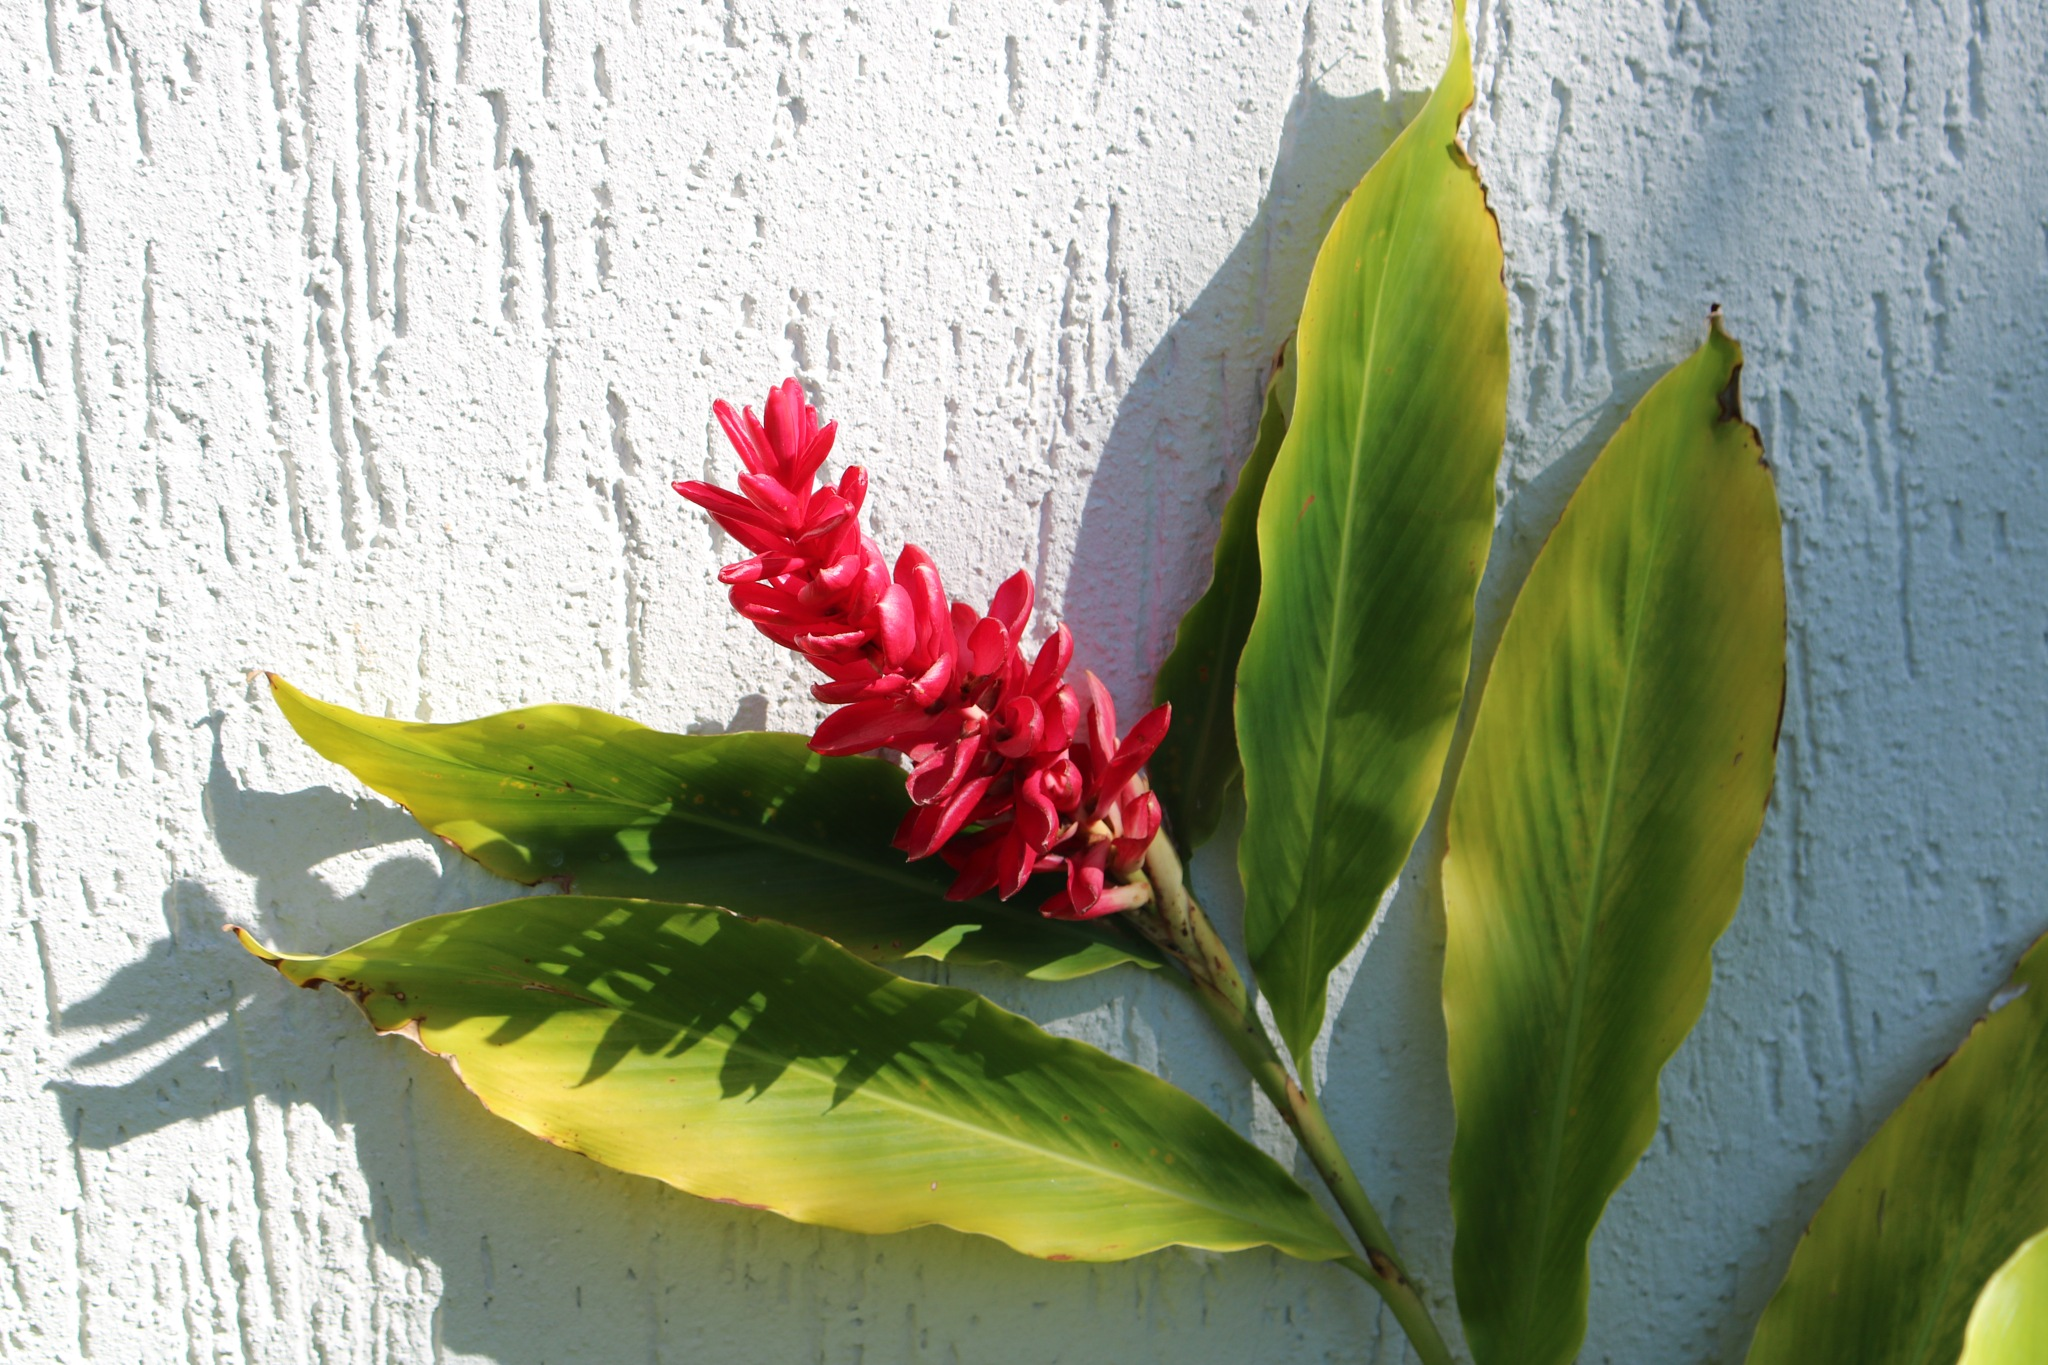 Flower of Red Ginger Plant by simonp